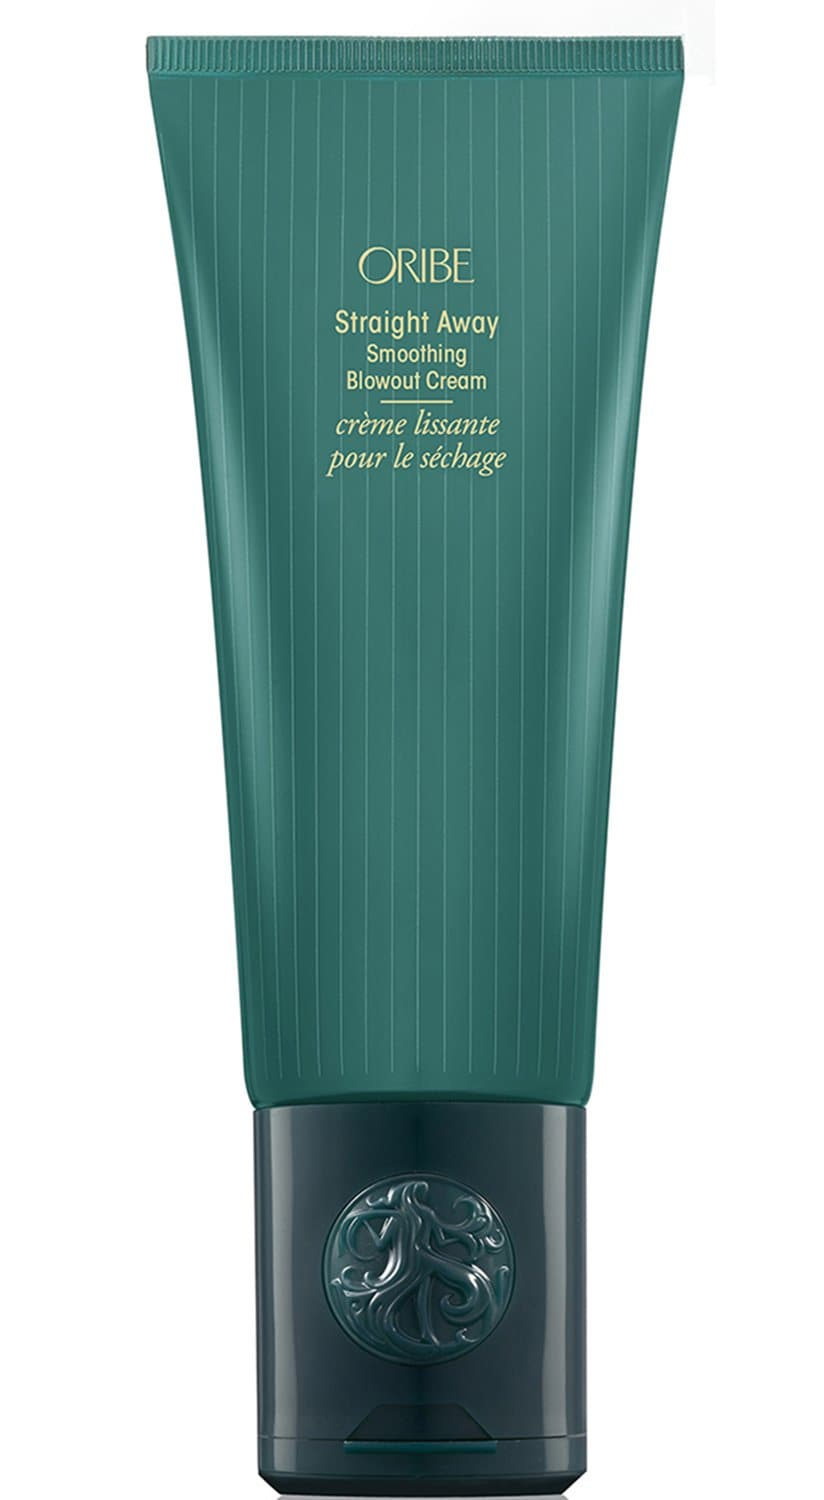 Straight Away Smoothing Blowout Cream 150ml | Oribe